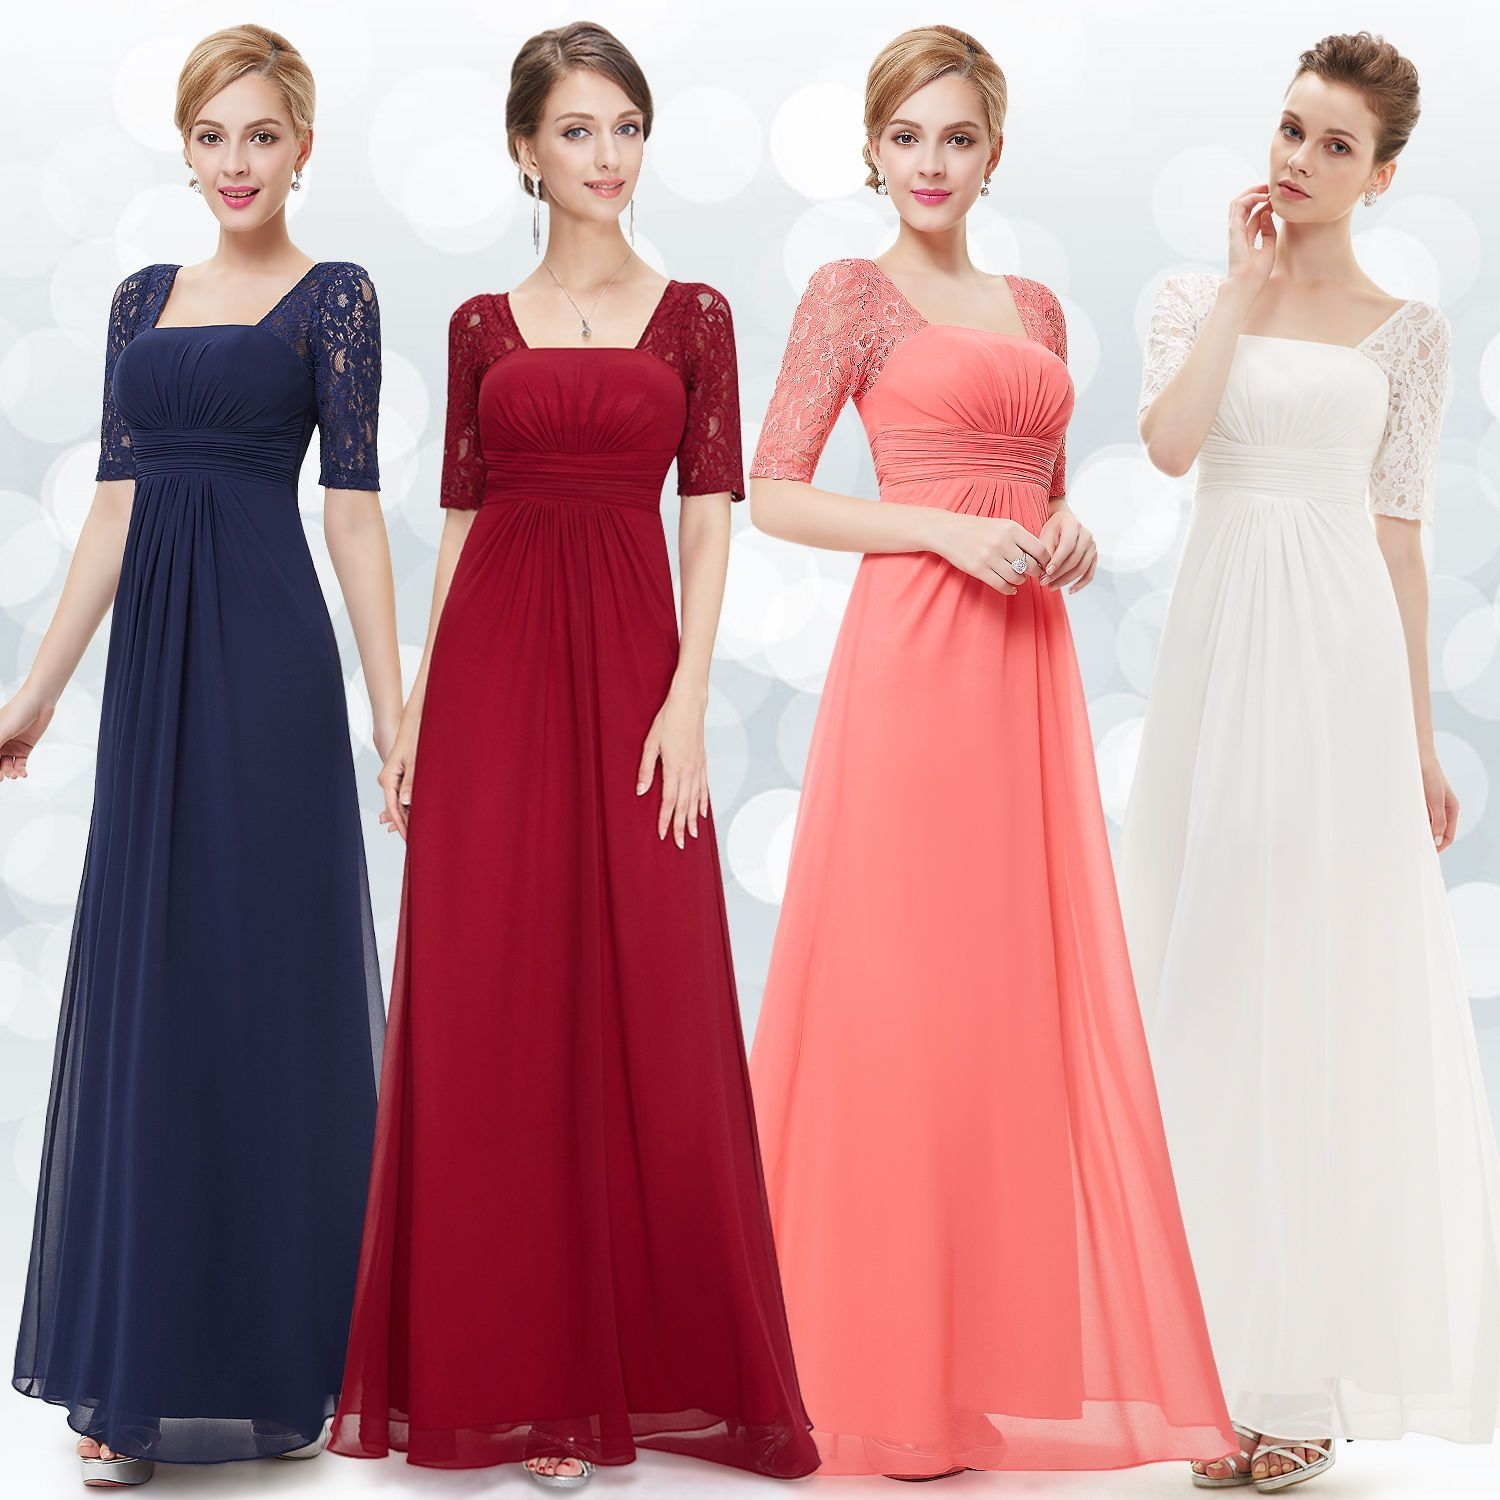 Womenus short sleeve bridesmaid dresses formal evening dress prom